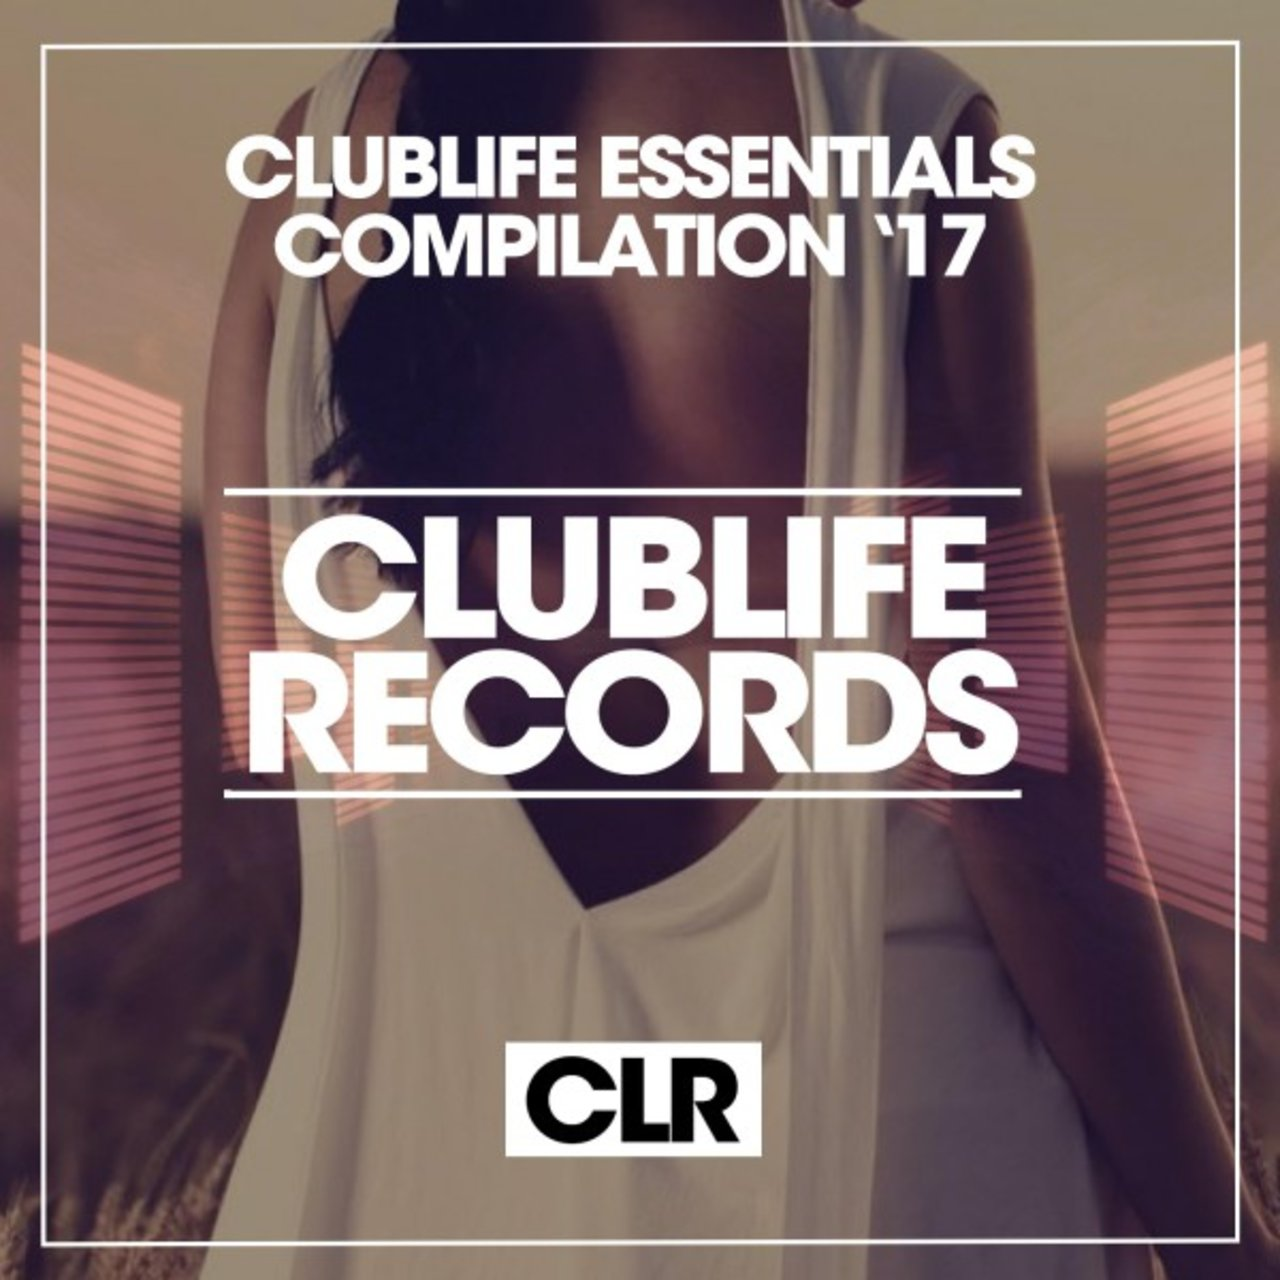 Clublife Essentials '17